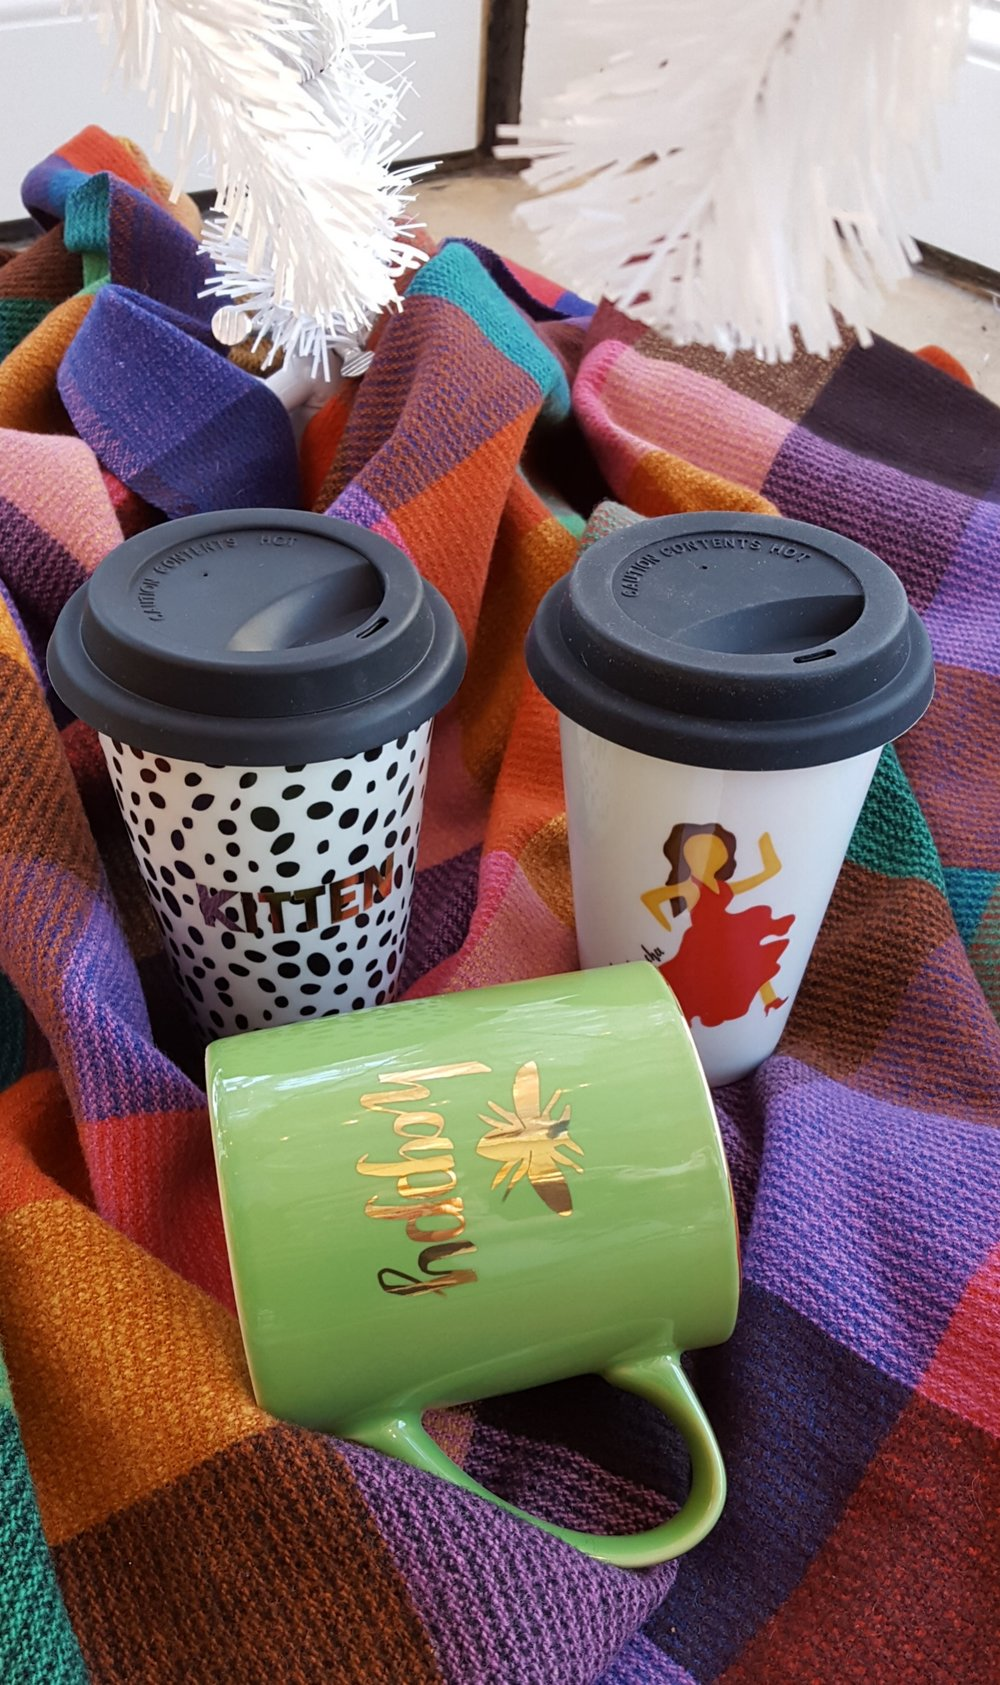 Kitten and Cha Cha travel mugs: $18 each, Bee Happy mug: $12